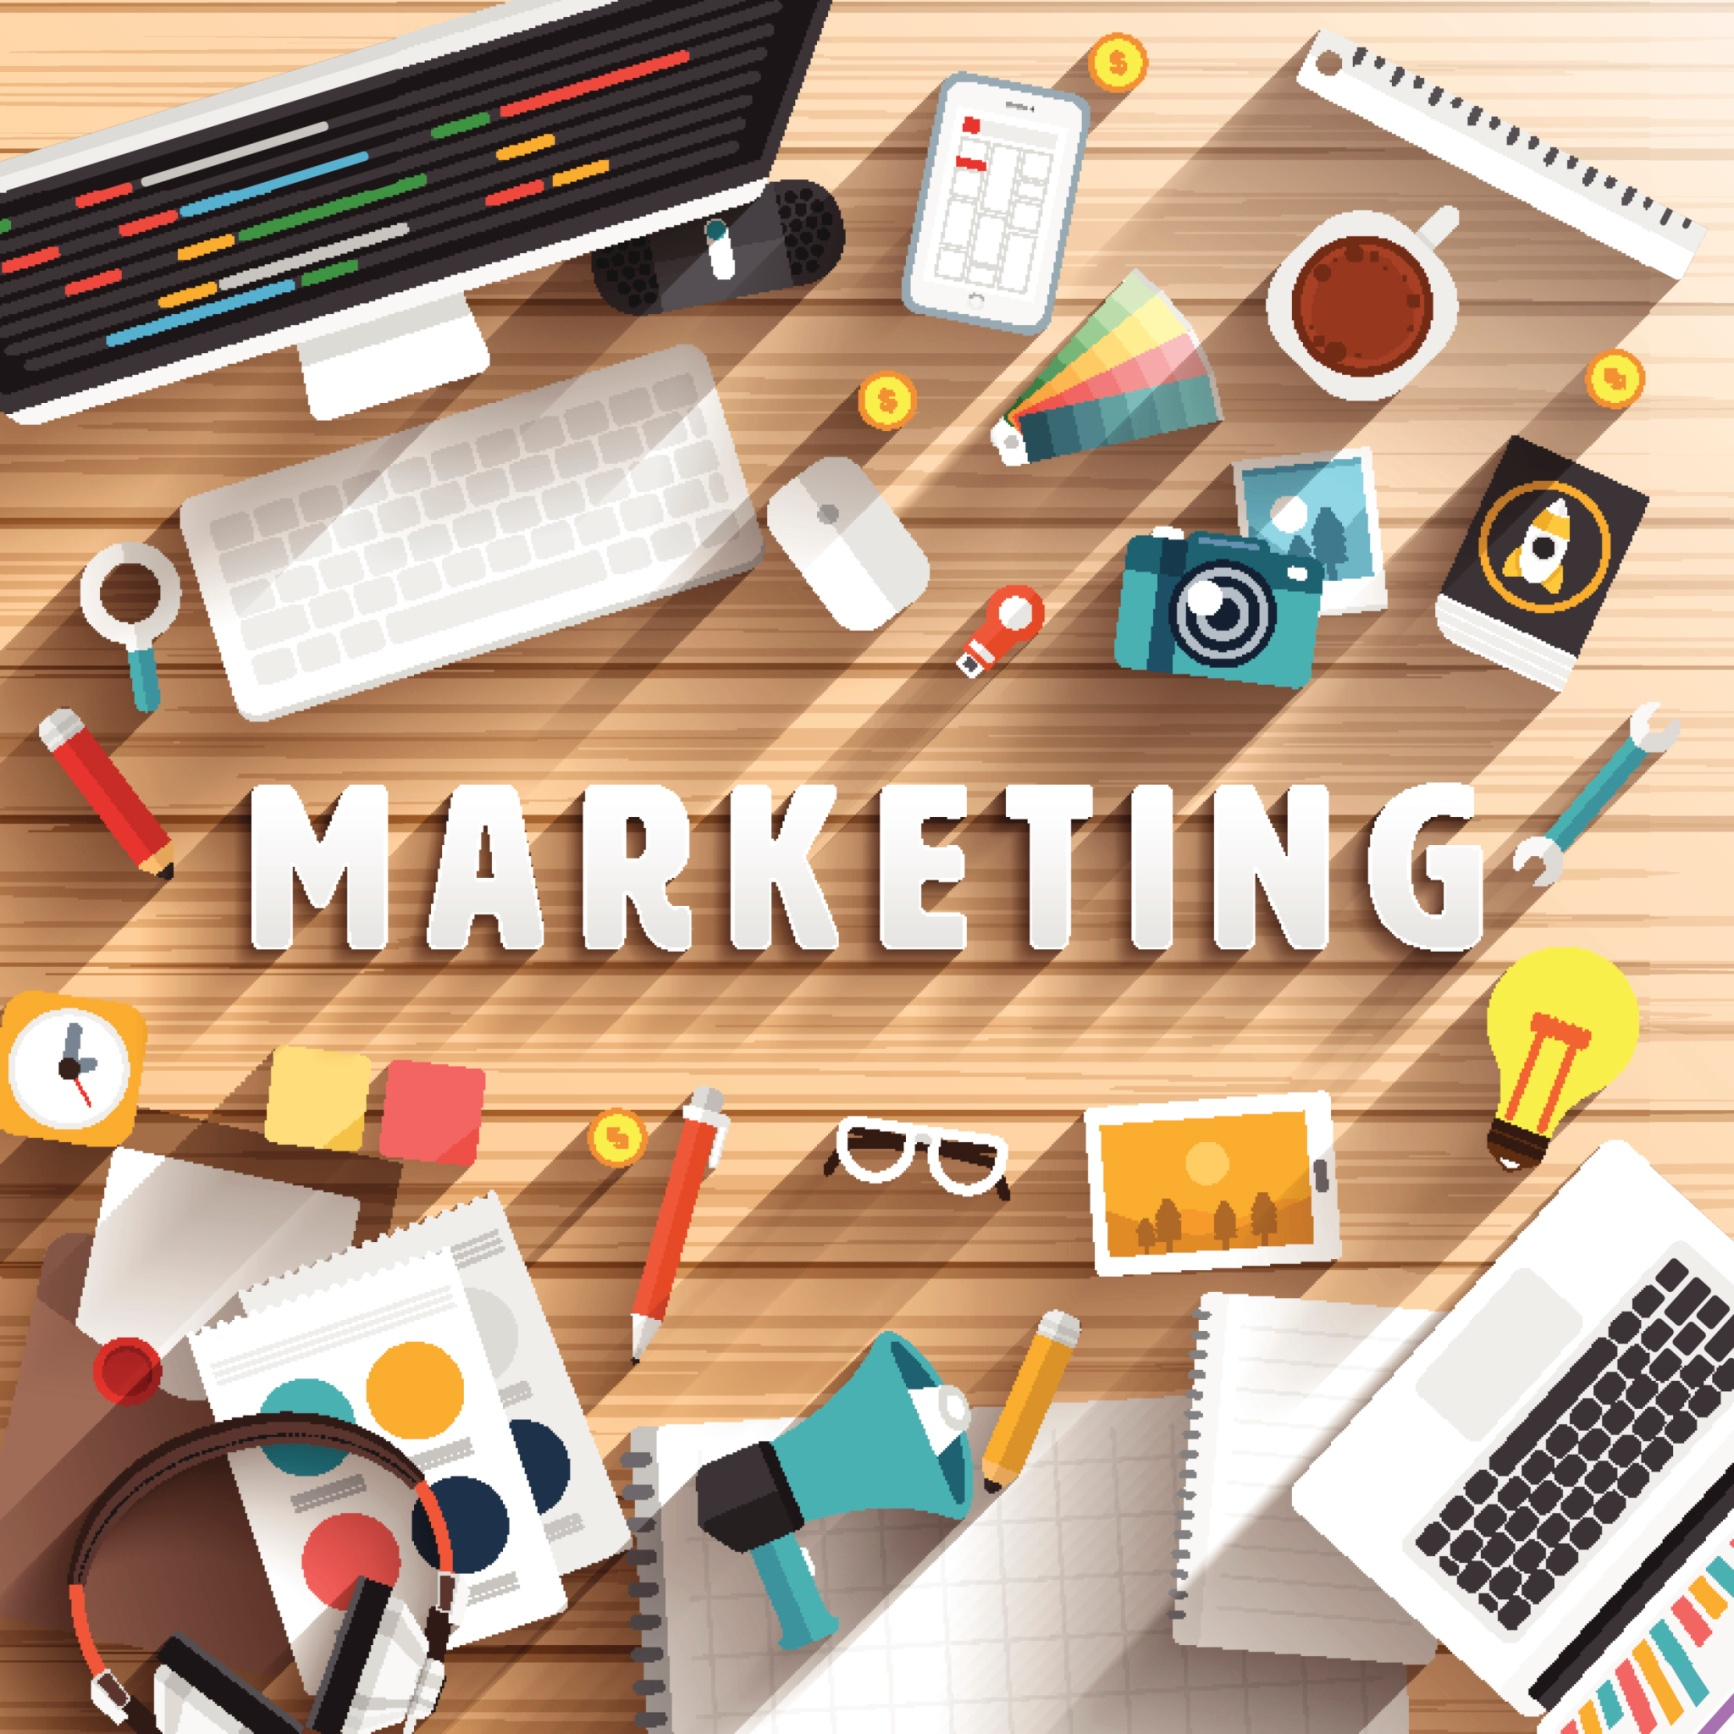 4 Essential Marketing Materials You Need to Promote Your Business